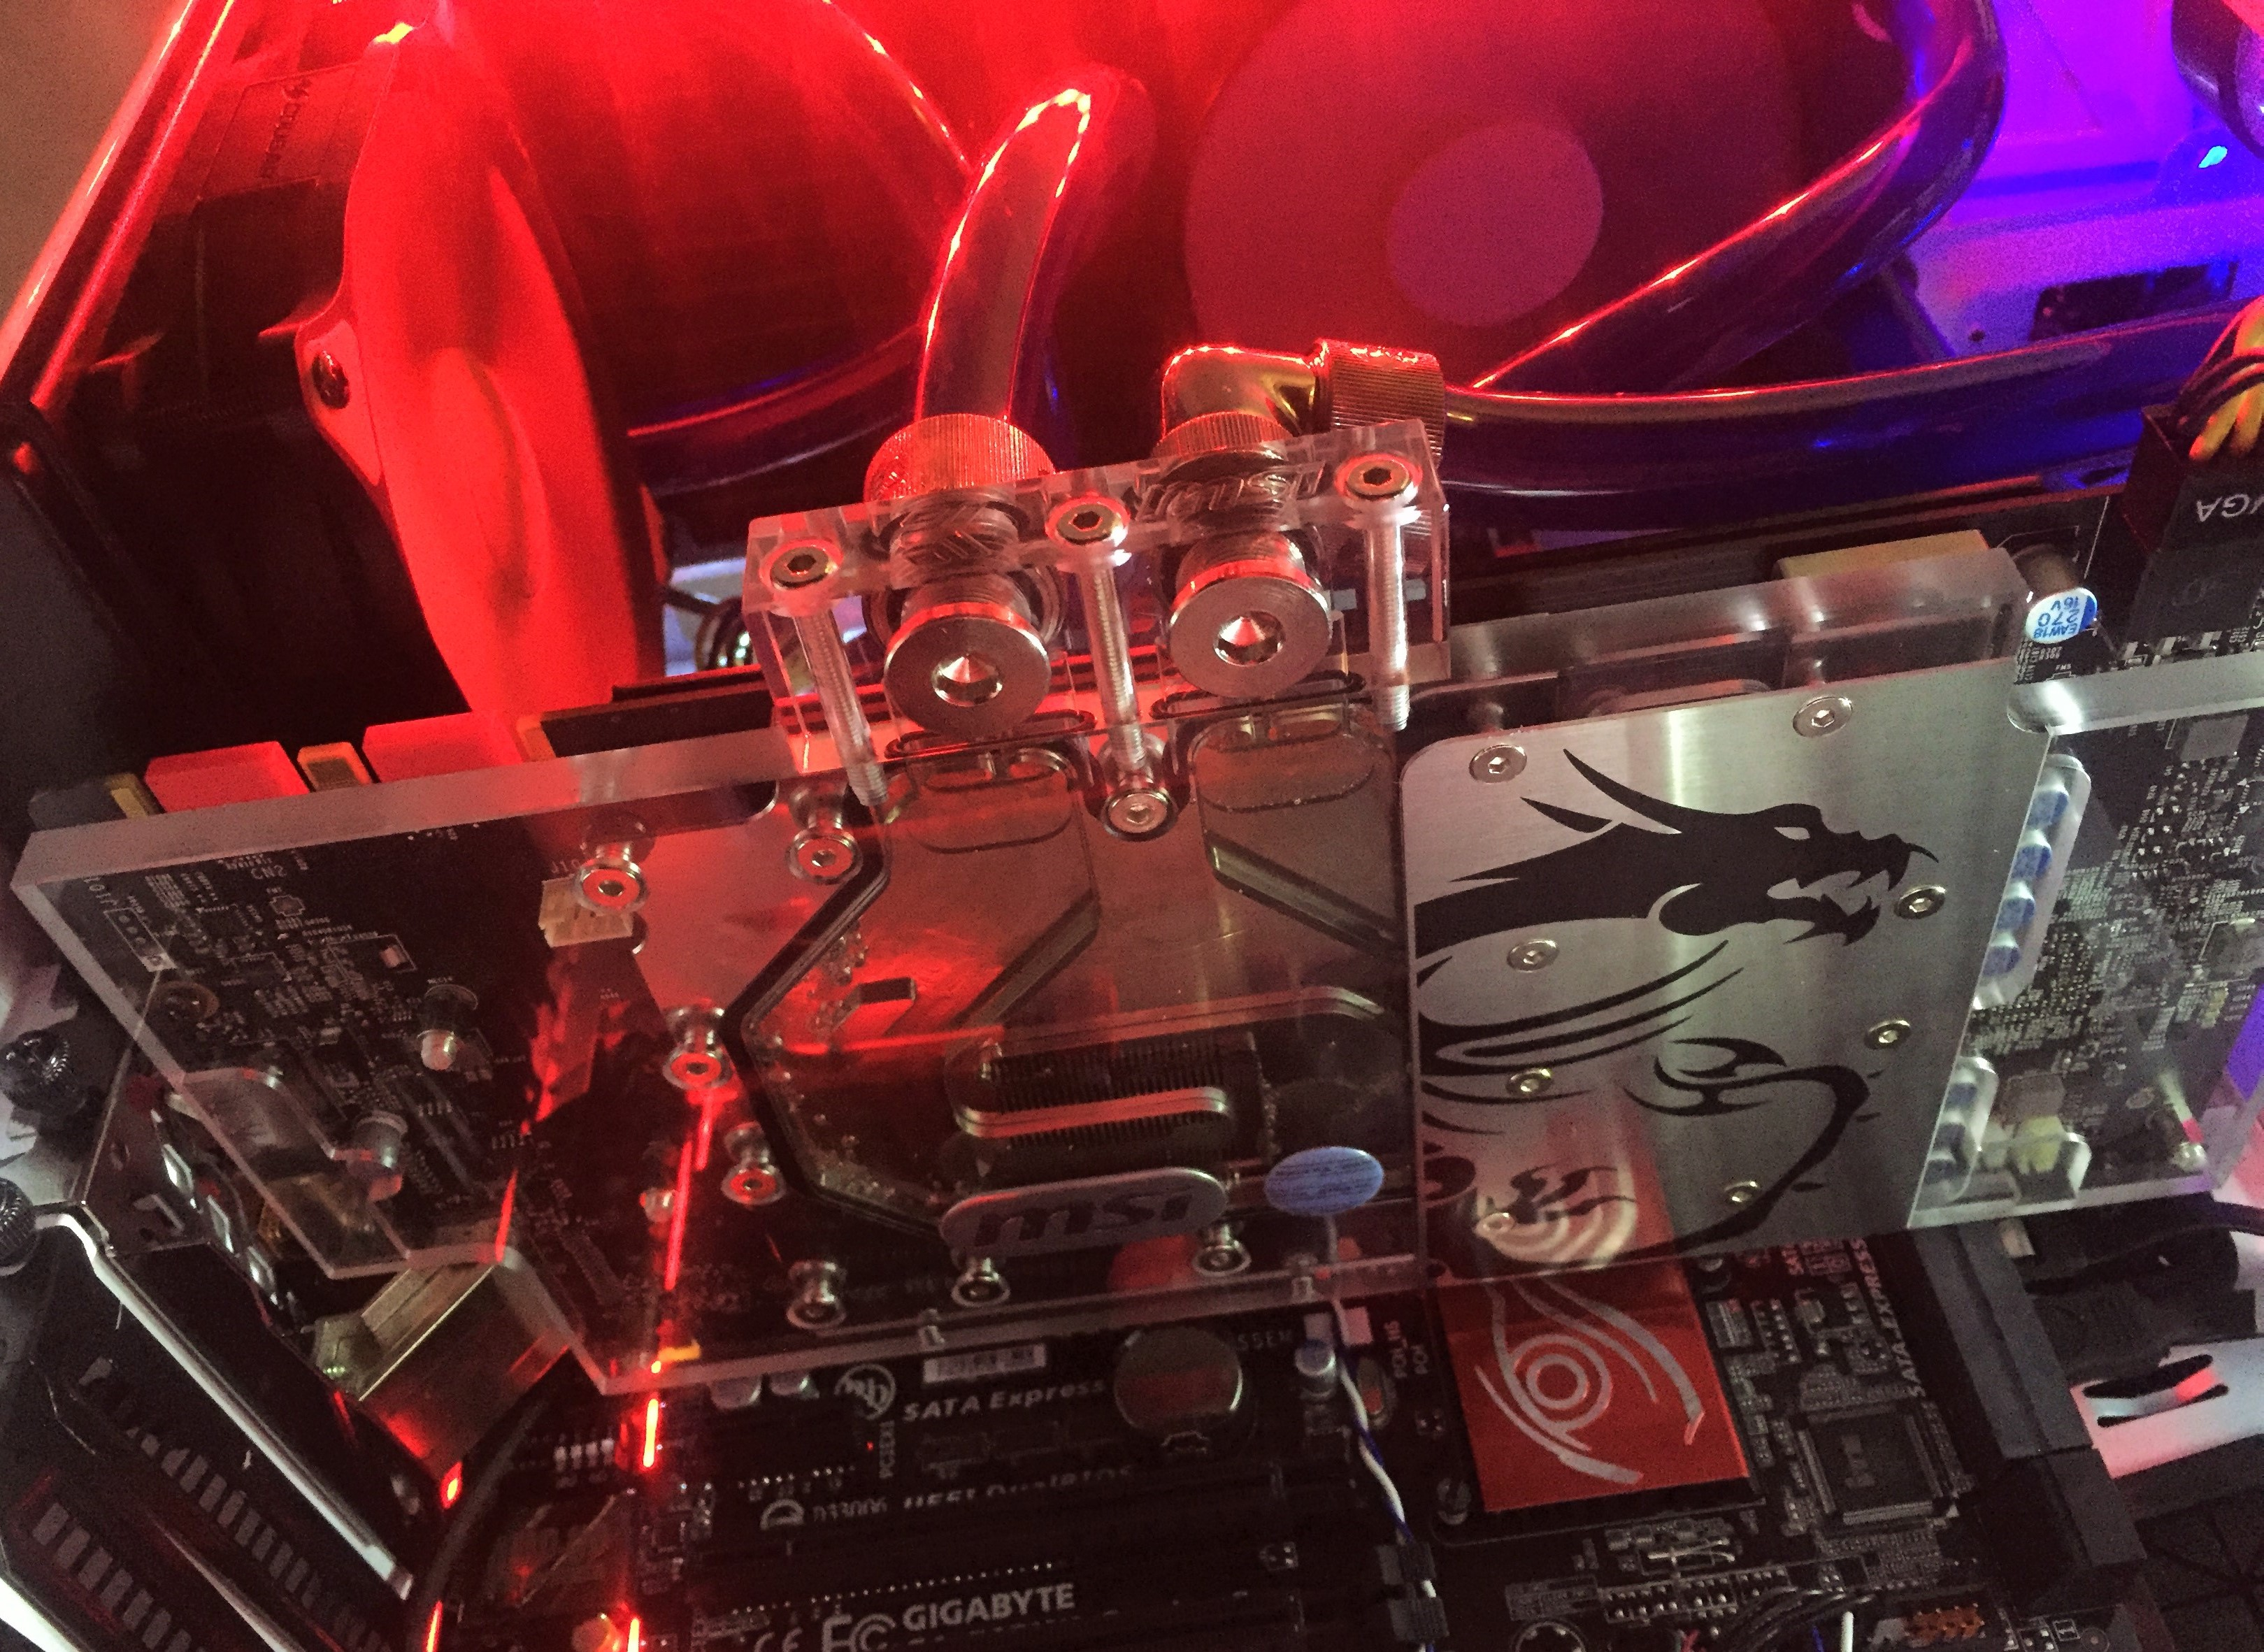 MSi left the plastic on the 1080 Seahawk EK X    - Overclock net